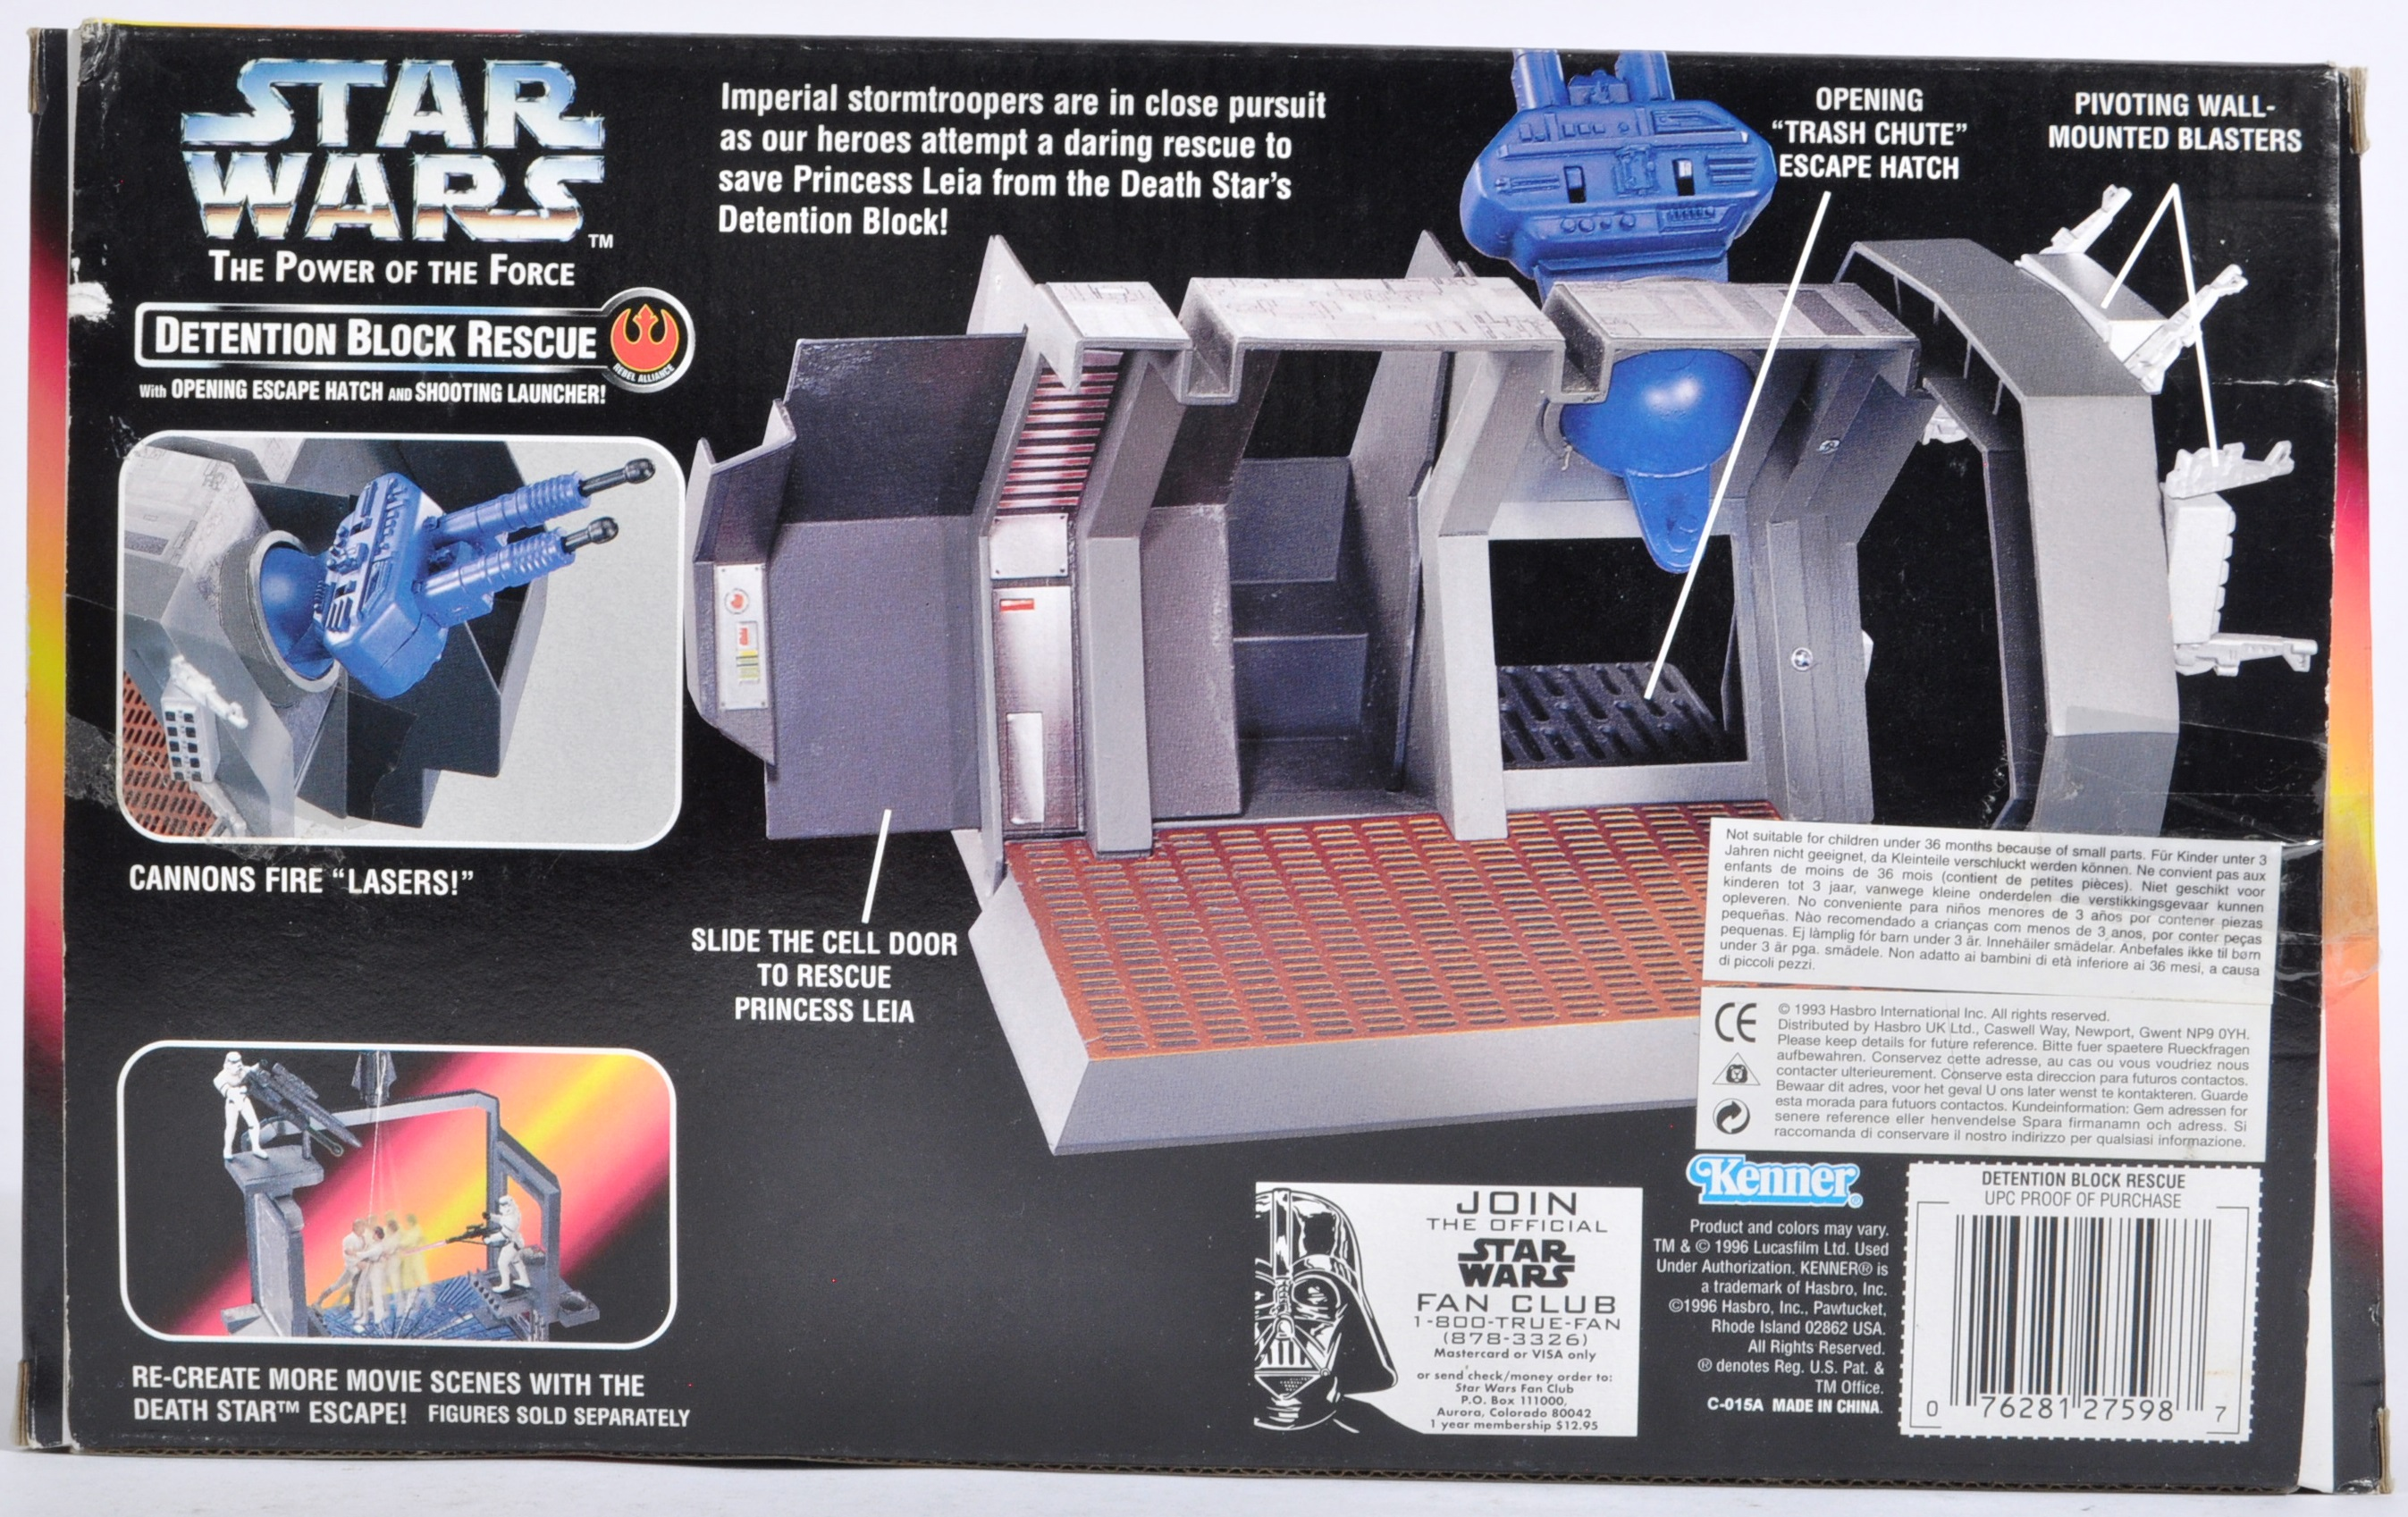 STAR WARS - COLLECTION OF KENNER POWER OF THE FORCES - Image 7 of 13